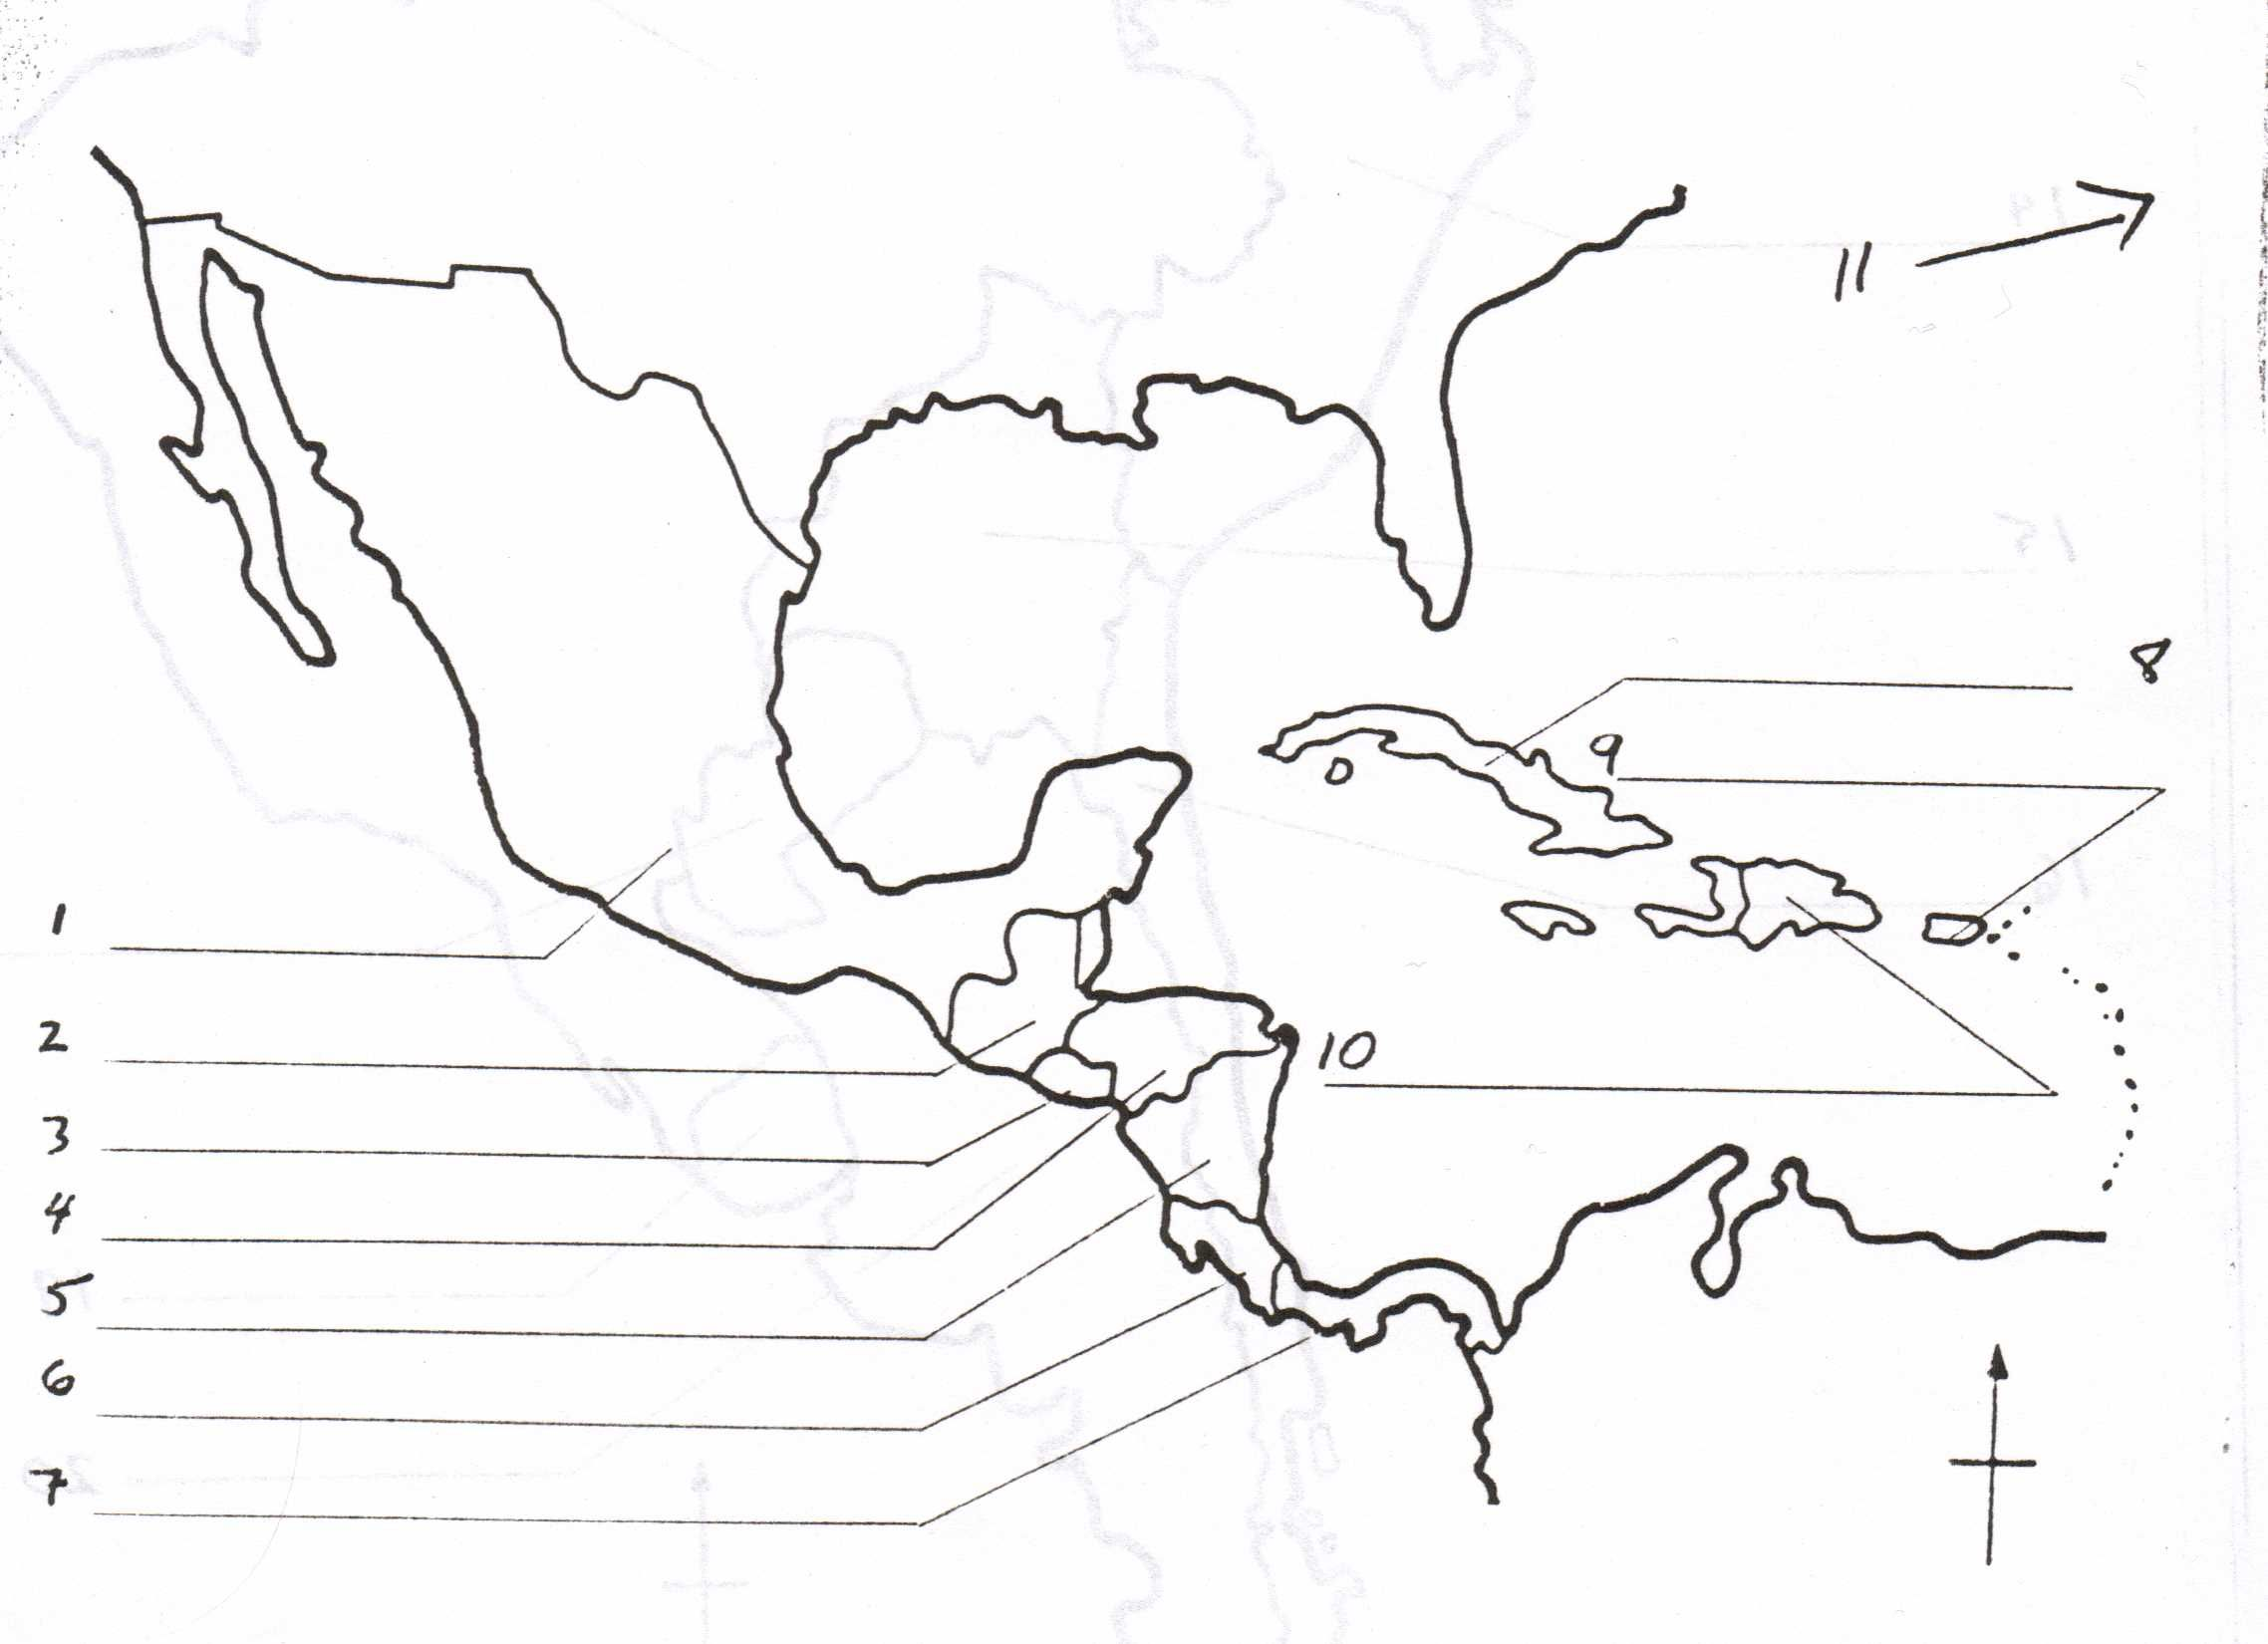 Blank Map Of Central America And Caribbean Islands Best Quiz Jpg